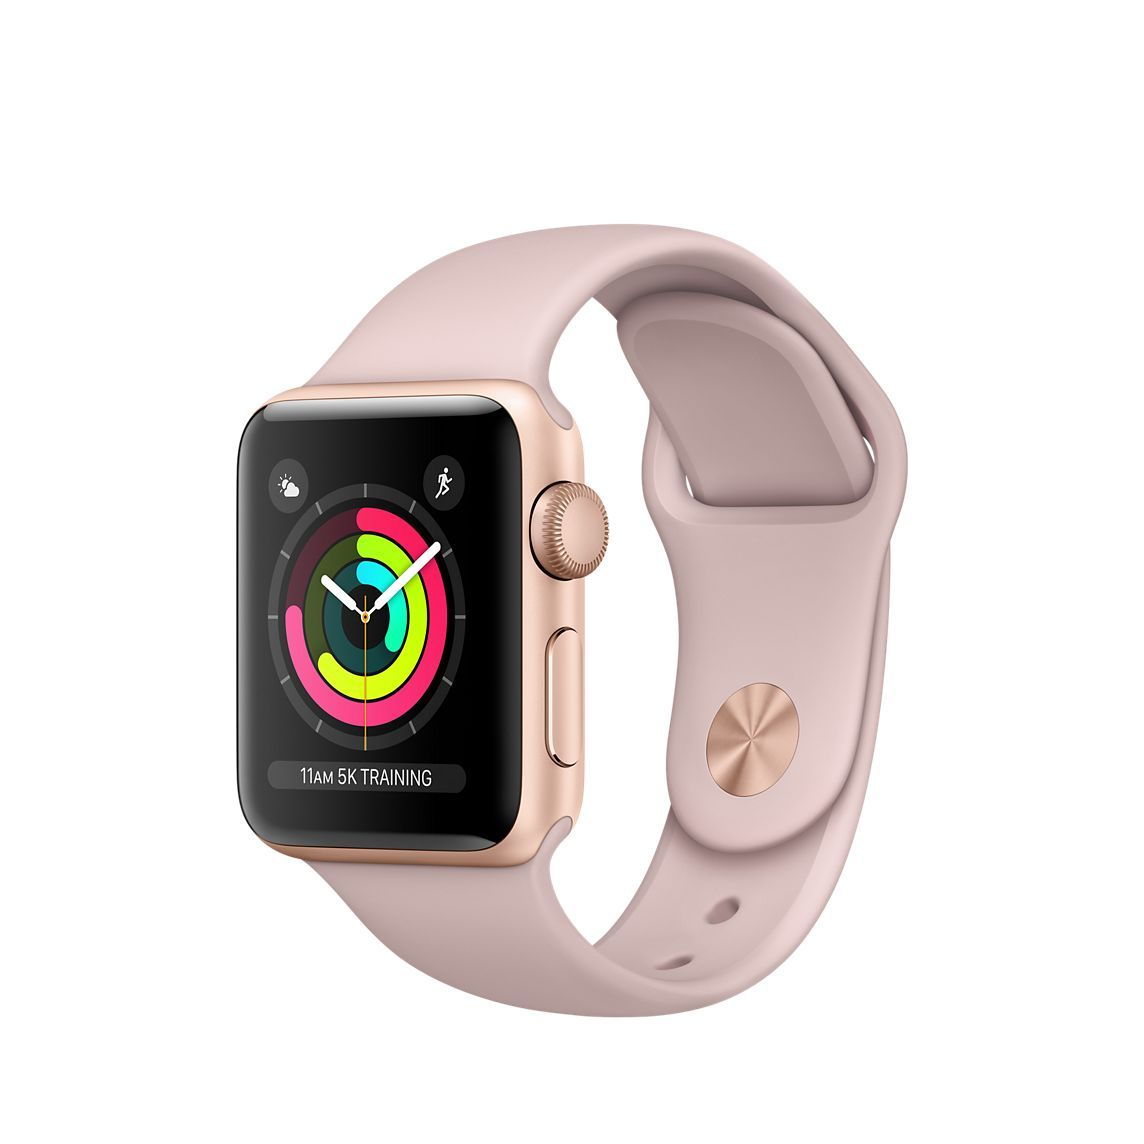 Refurbished Apple Watch Series 3 Gps 38mm Gold Aluminum Case With